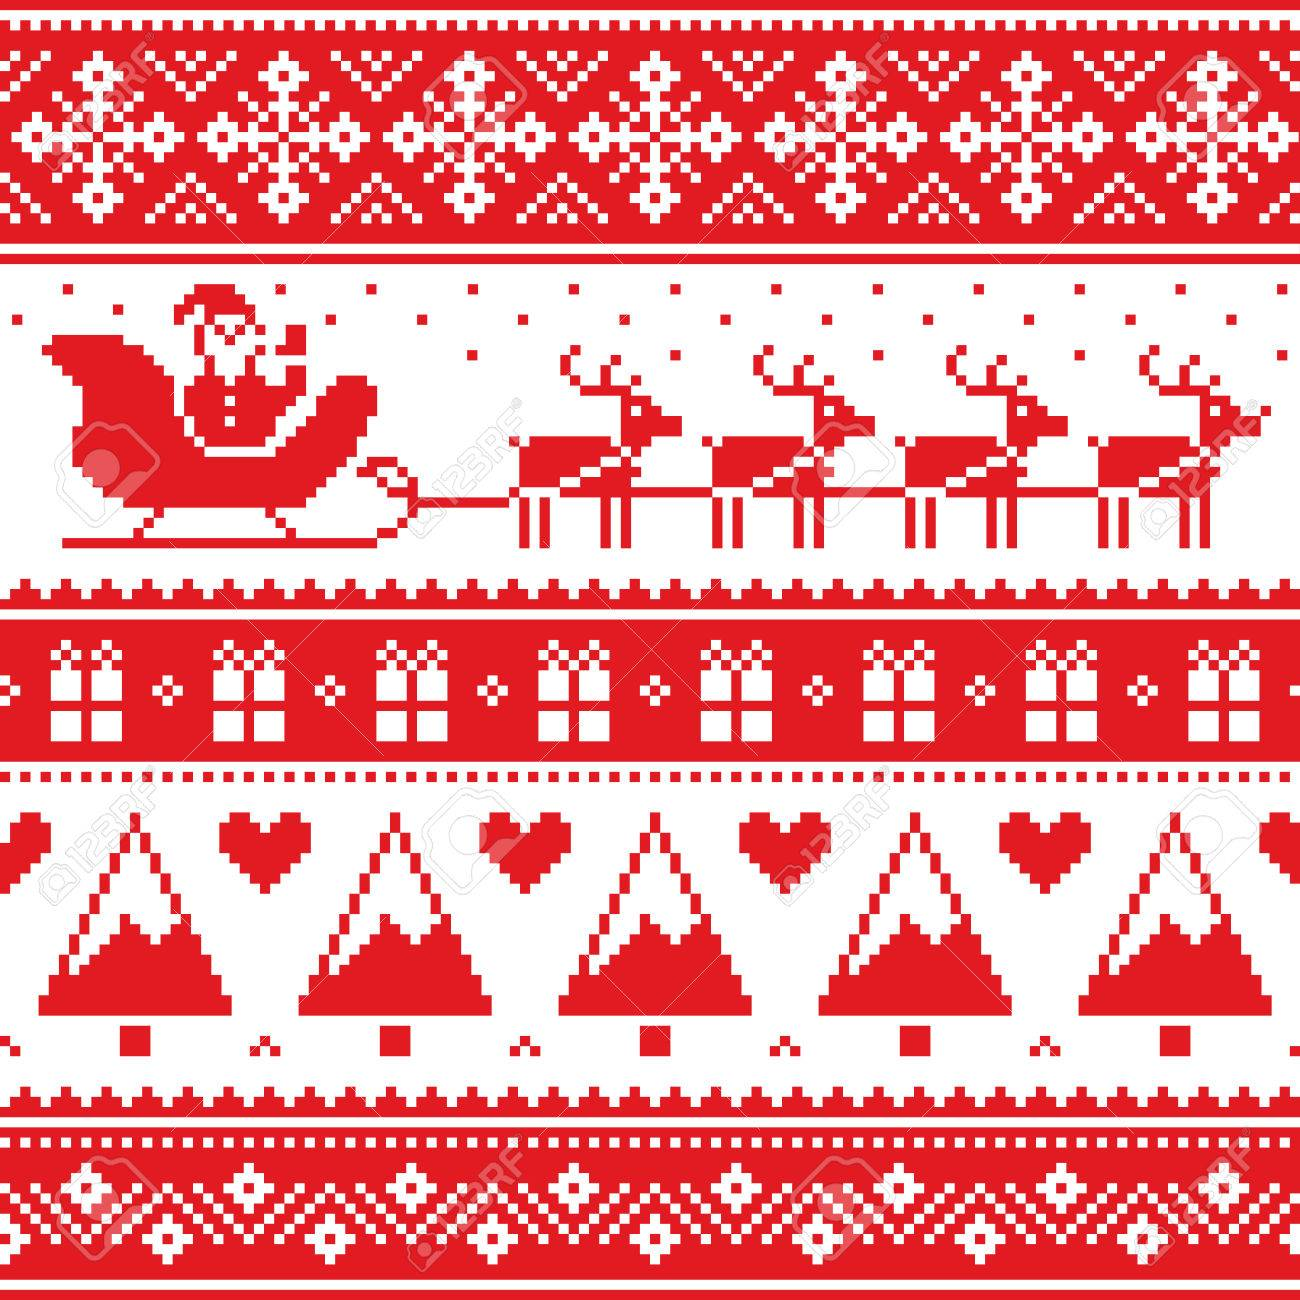 c91e3e570a9d Christmas jumper or sweater seamless red pattern with Santa and reindeer  Stock Vector - 56911074